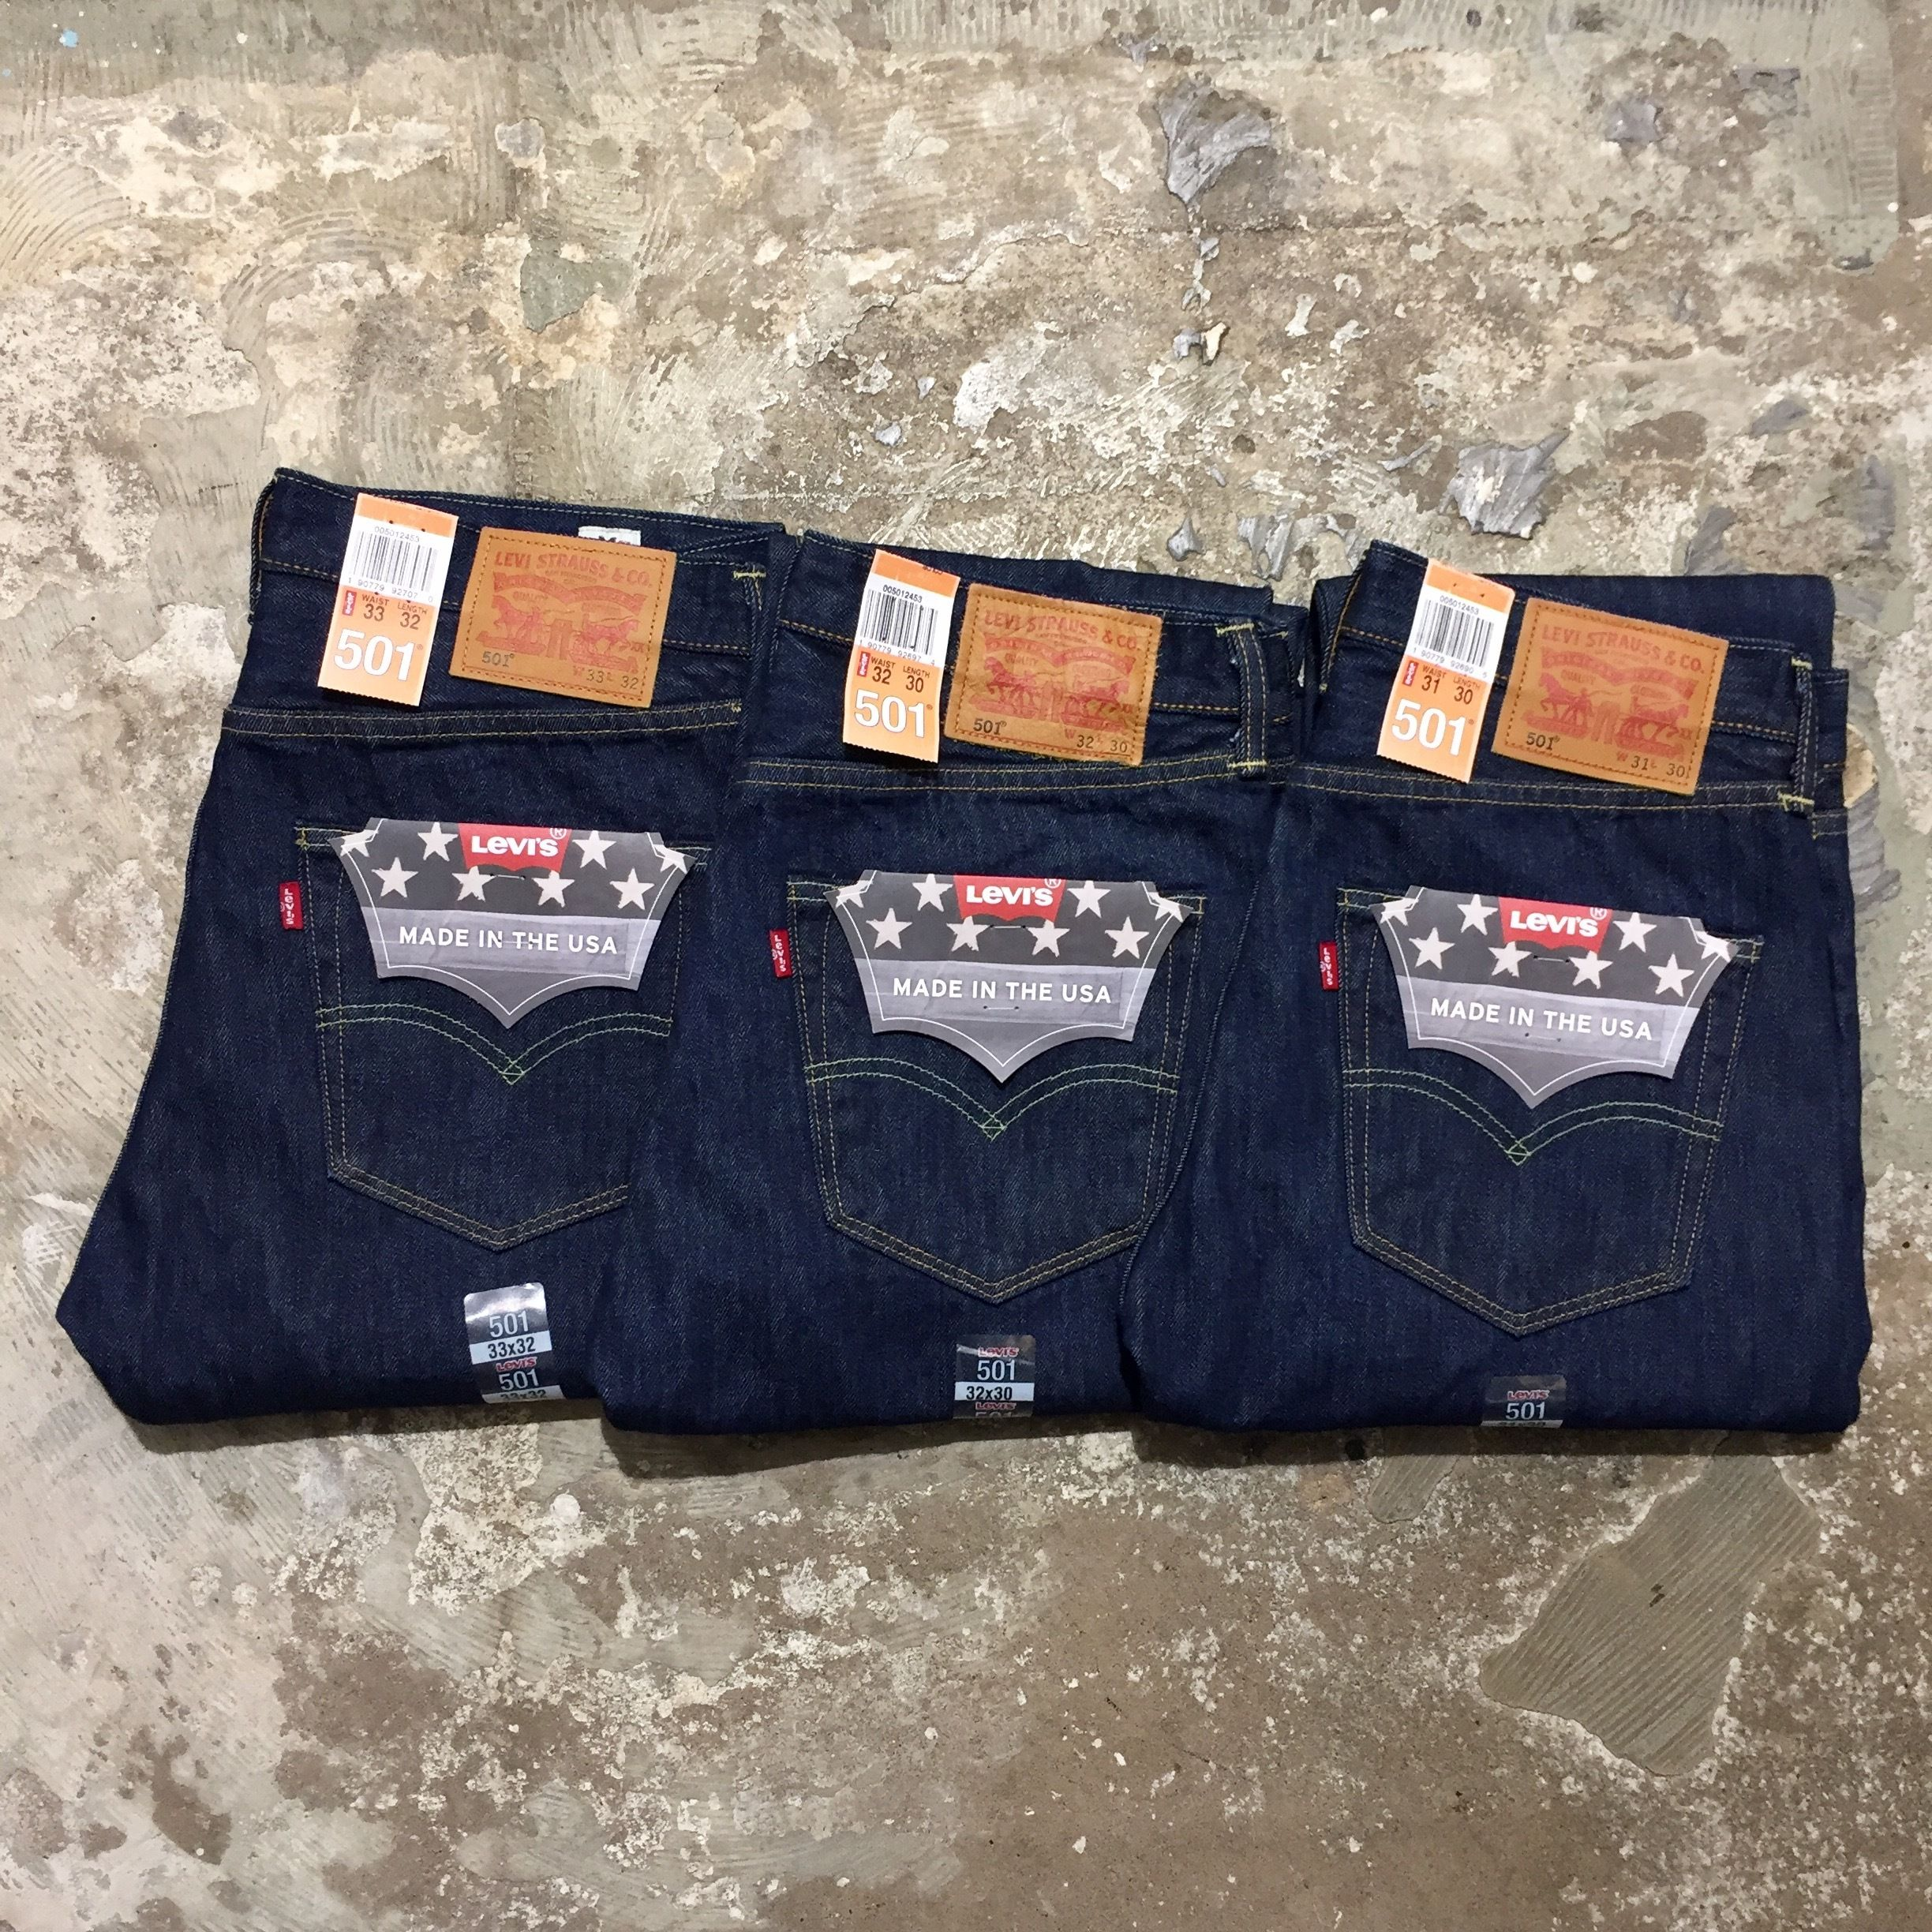 Levi's 501-2453 Denim Pants MADE IN USA (NEW)